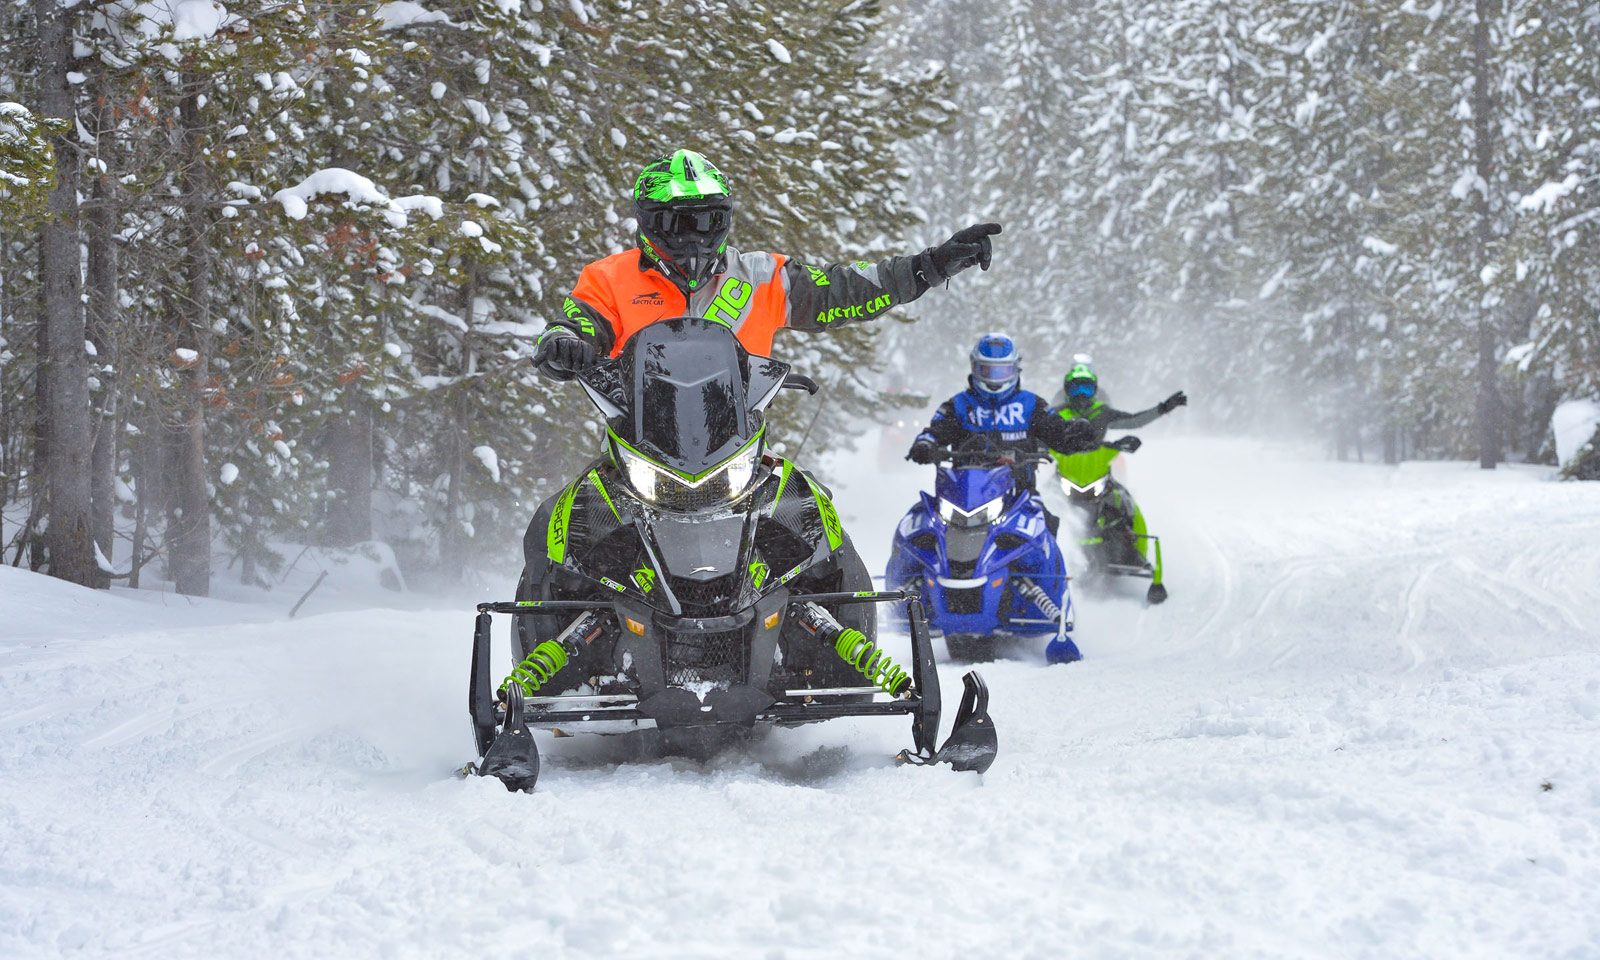 Snowmobilers showing hand signals on trail